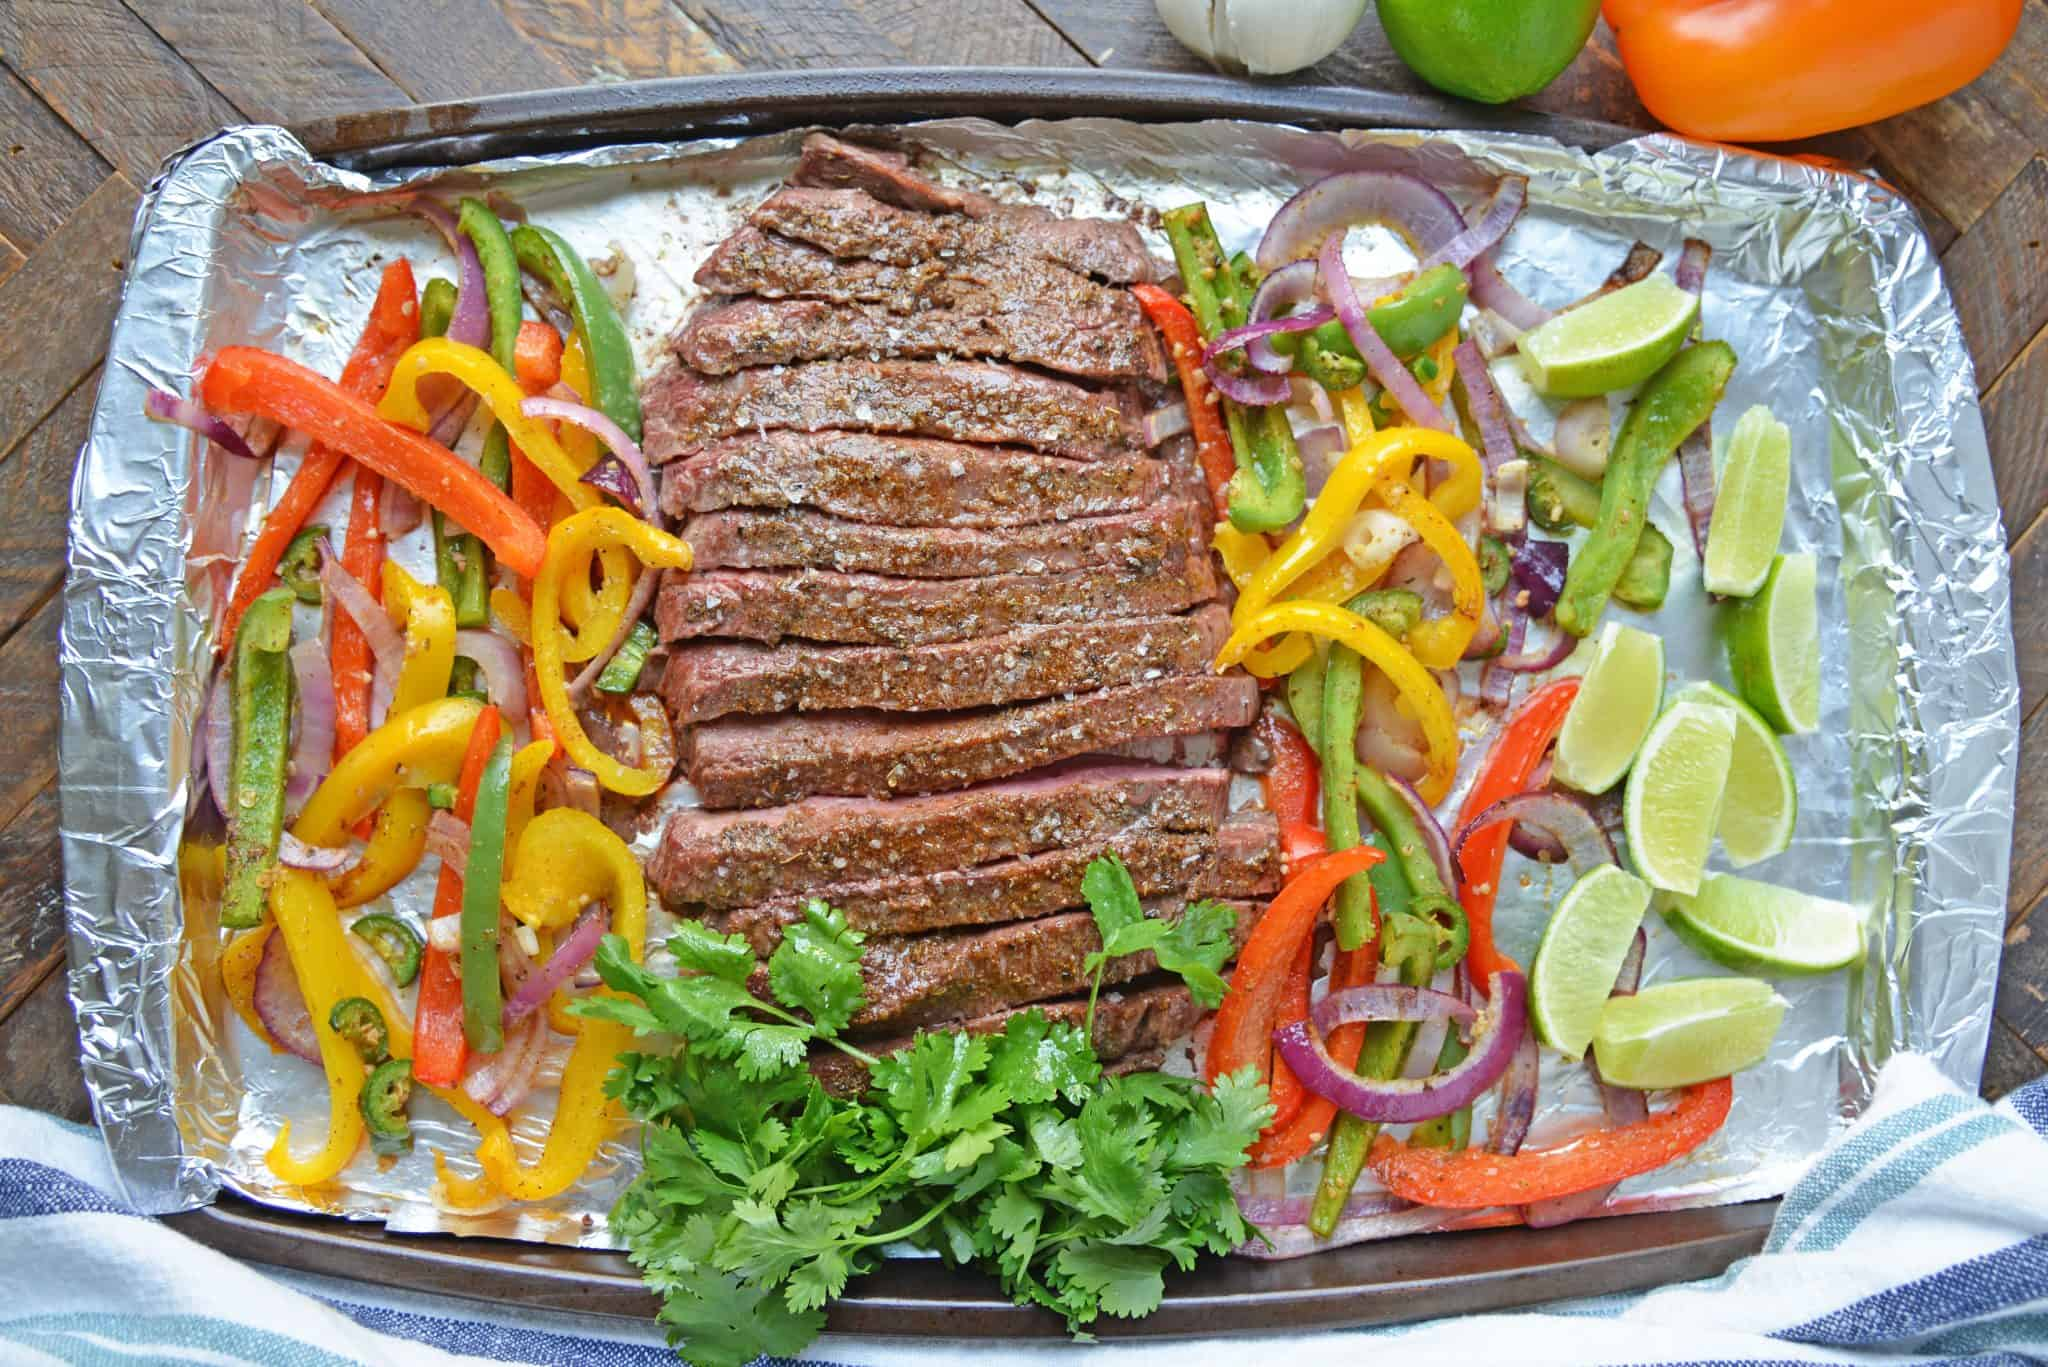 Sheet Pan Steak Fajitas are an easy weeknight meal using tender beef, homemade fajita seasoning, peppers, onions and jalapenos! #sheetpanrecipes #steakfajitas #bestangusbeef #steakholder www.savoryexperiments.com